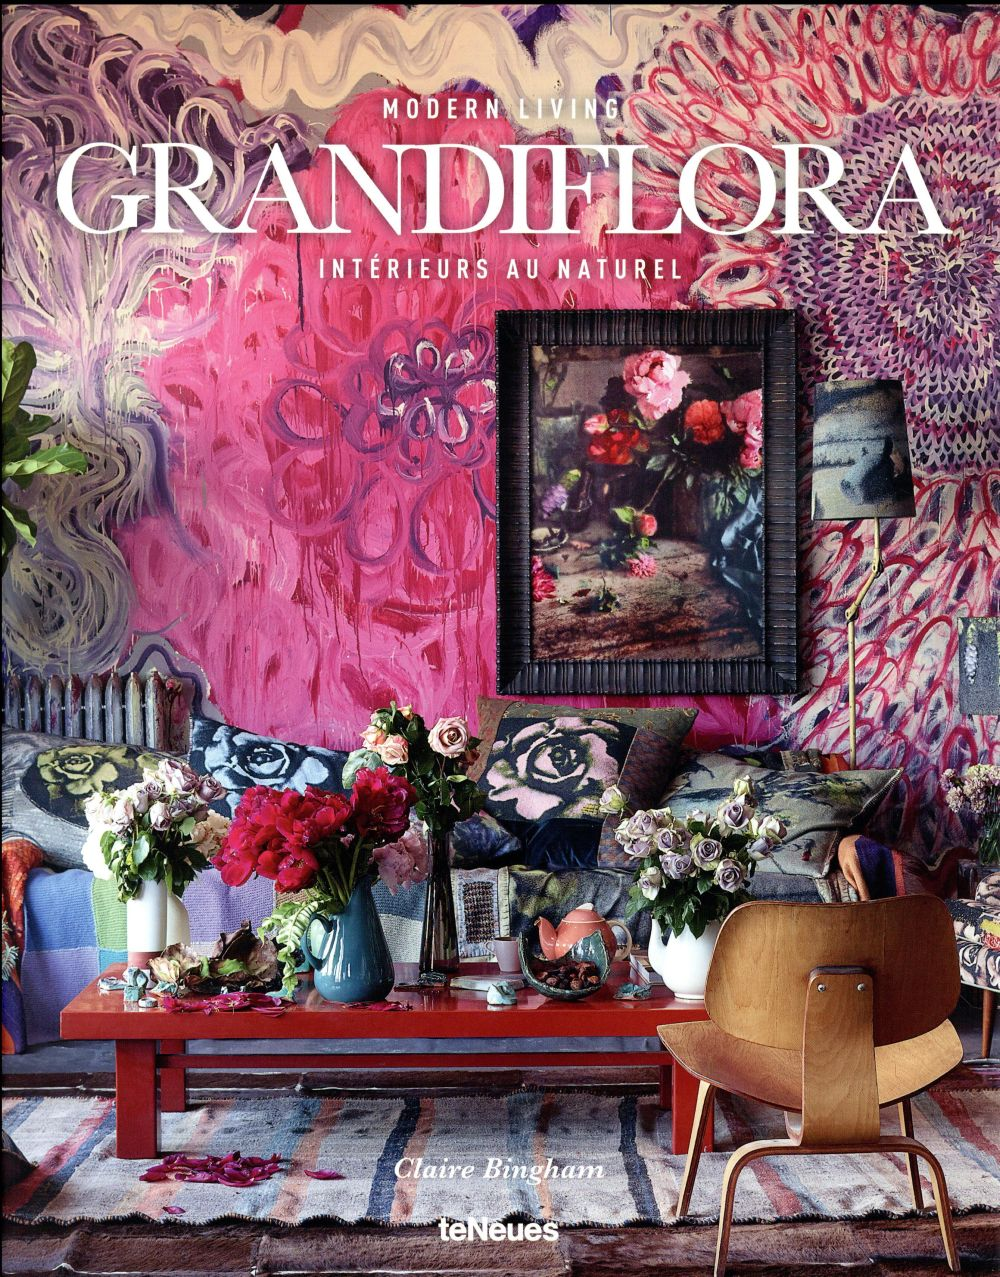 Modern living - grandiflora - living with flowers